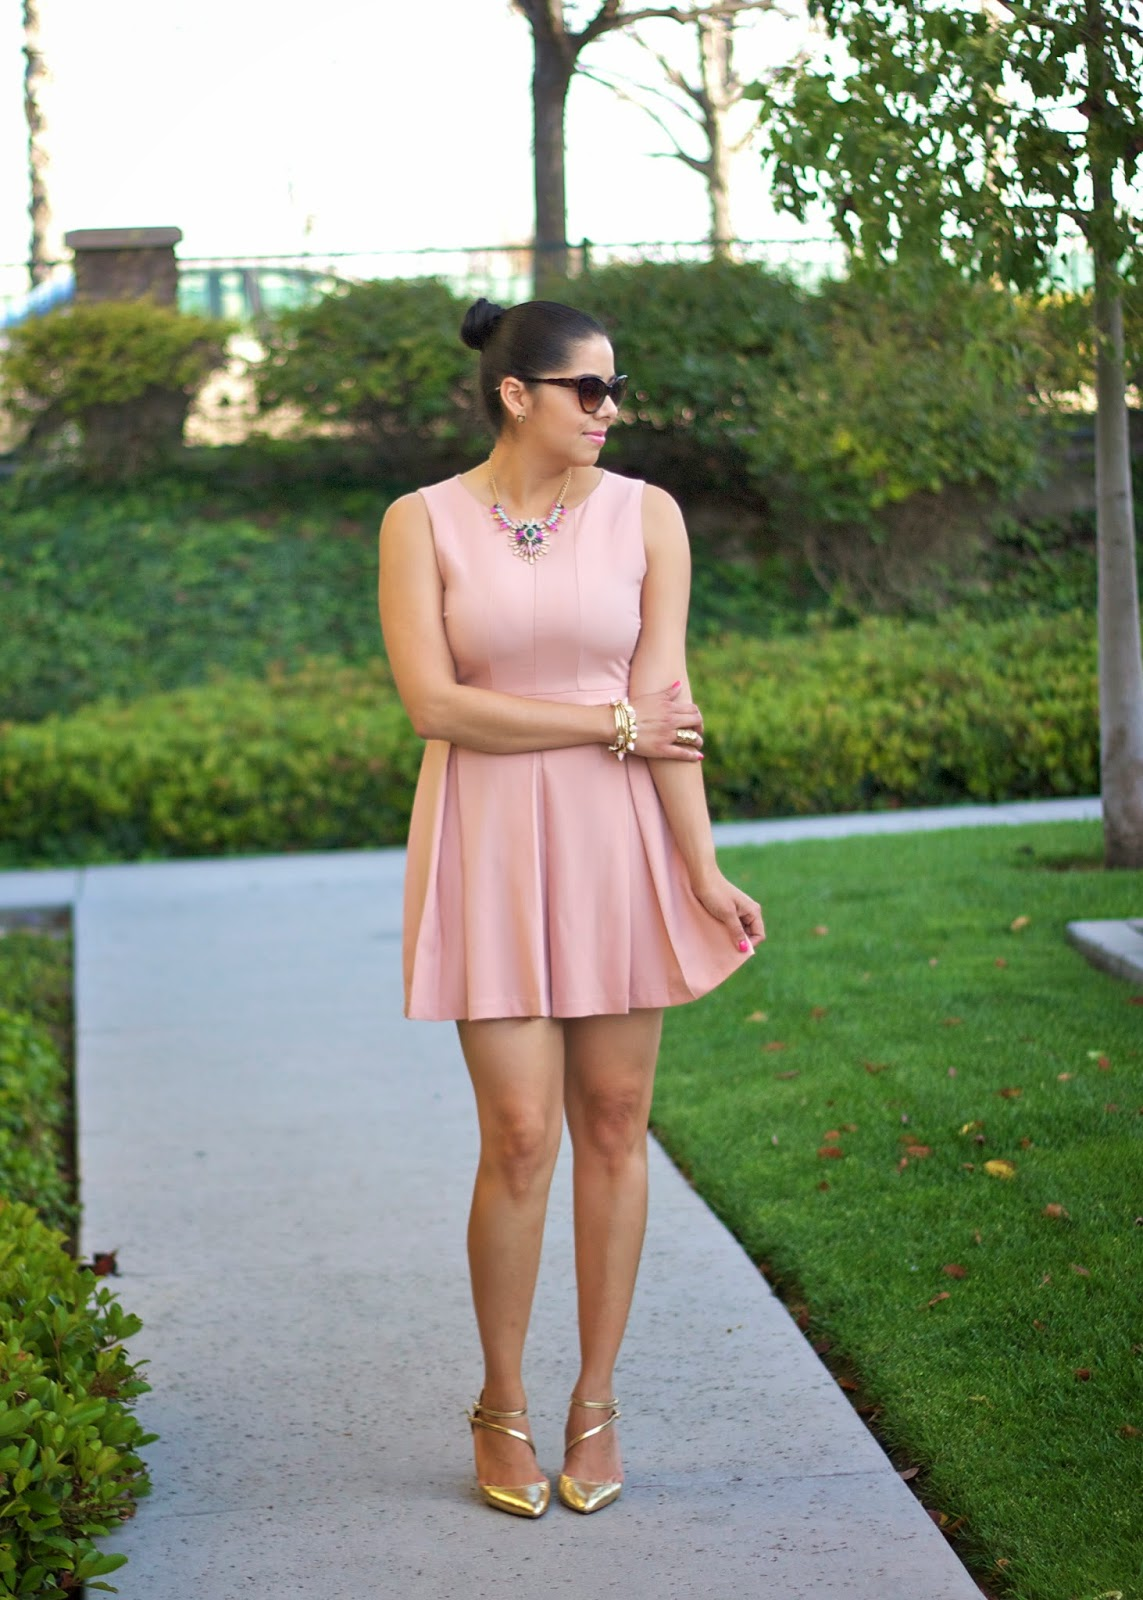 how to wear blush and gold, chic girly outfit, ballerina outfit, san diego blogger